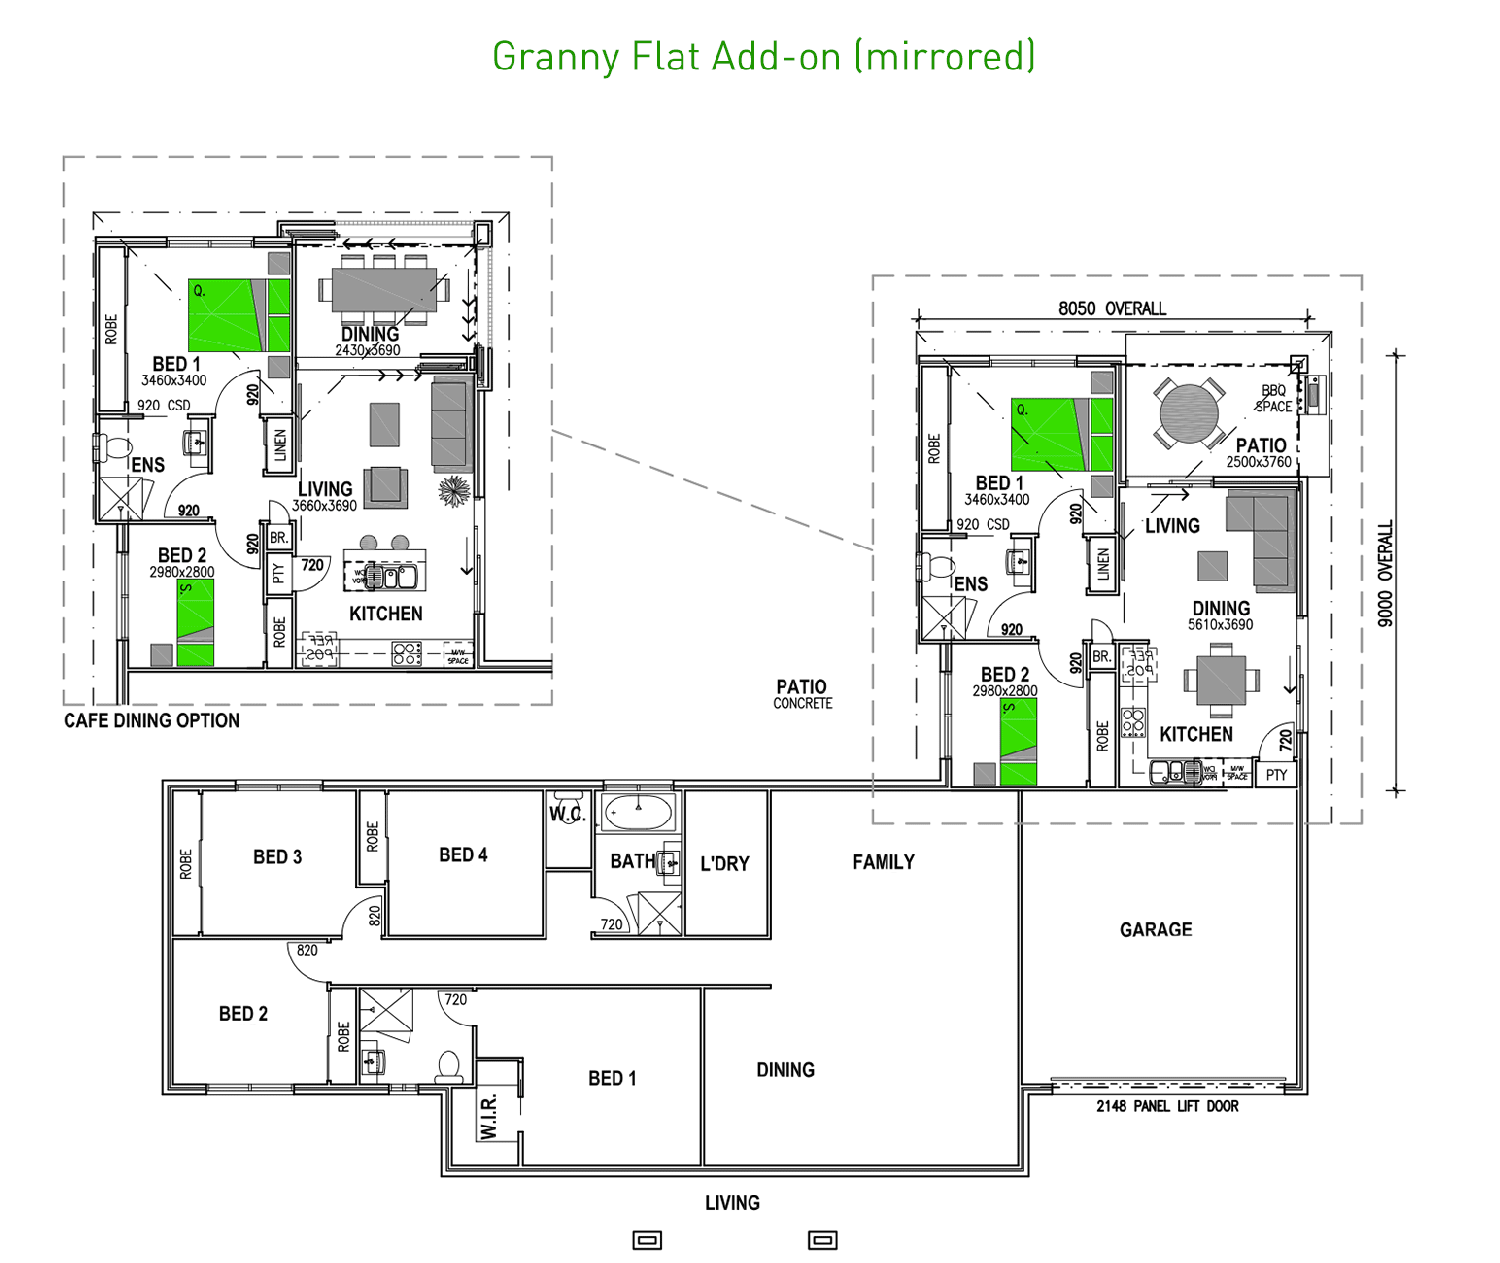 Attached Granny Flats on one bedroom house plans